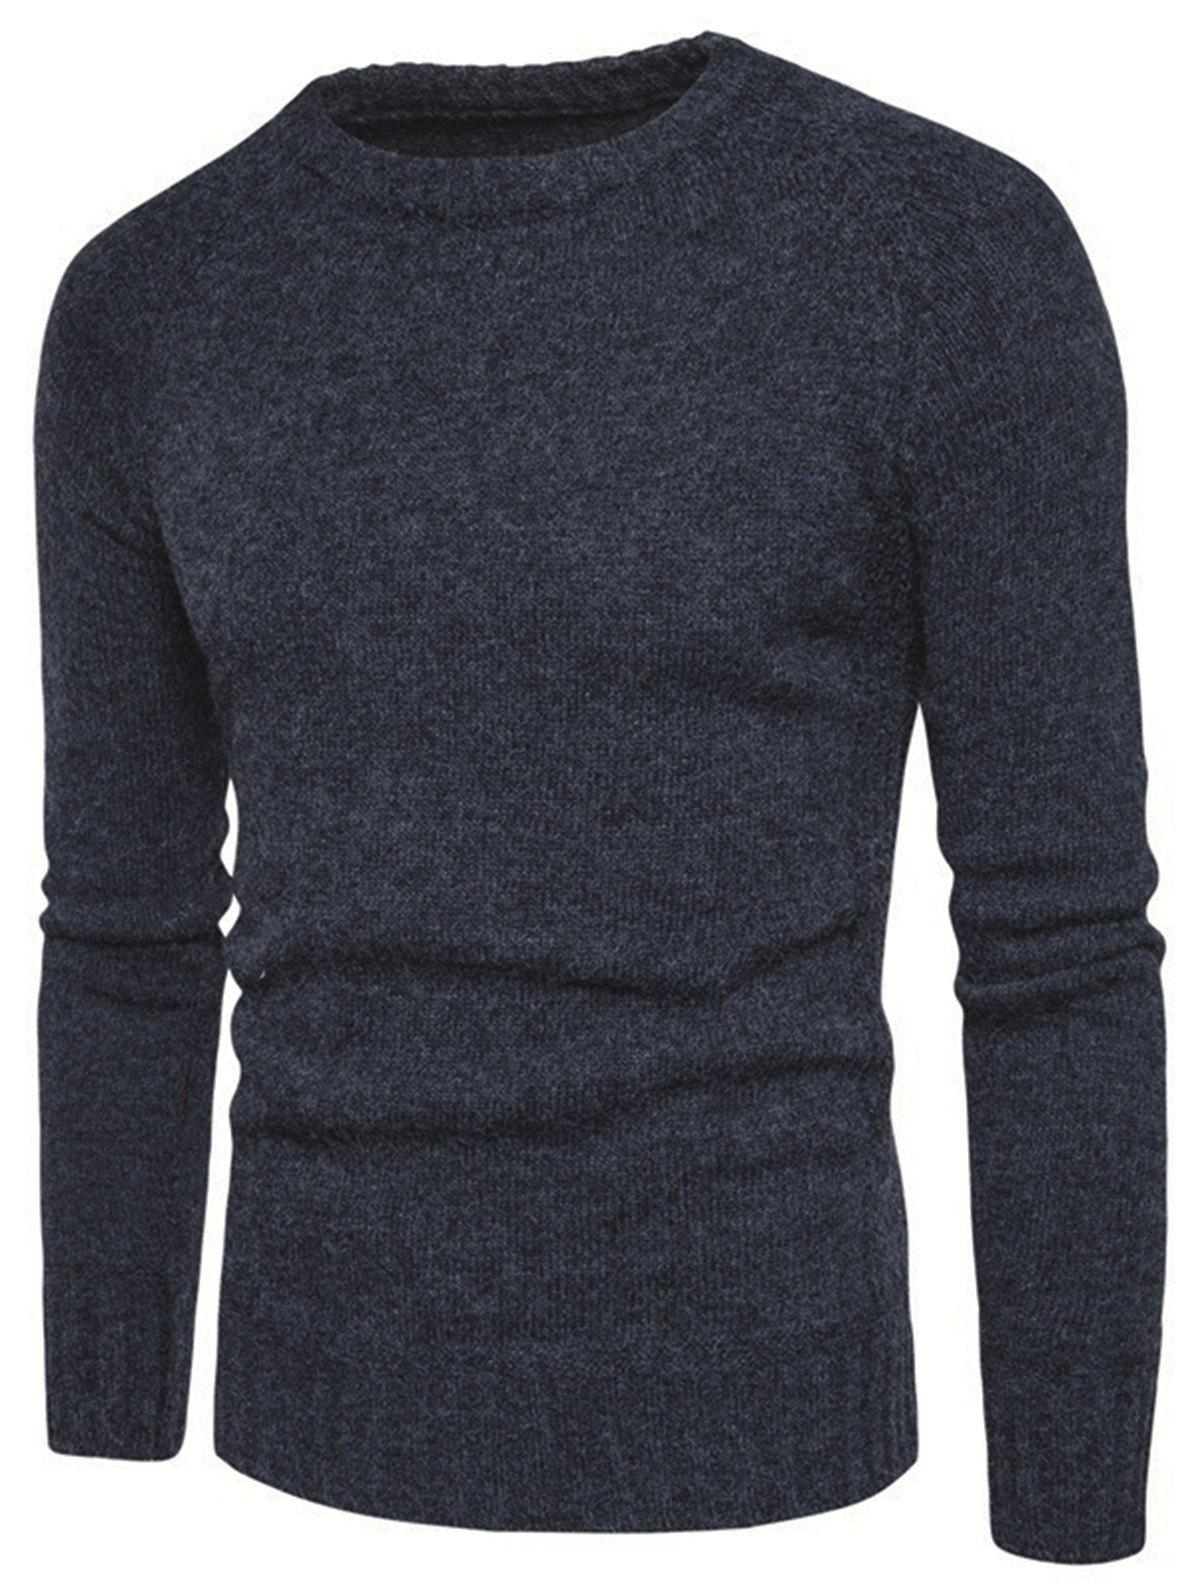 New Elbow Patch Raglan Sleeve Sweater